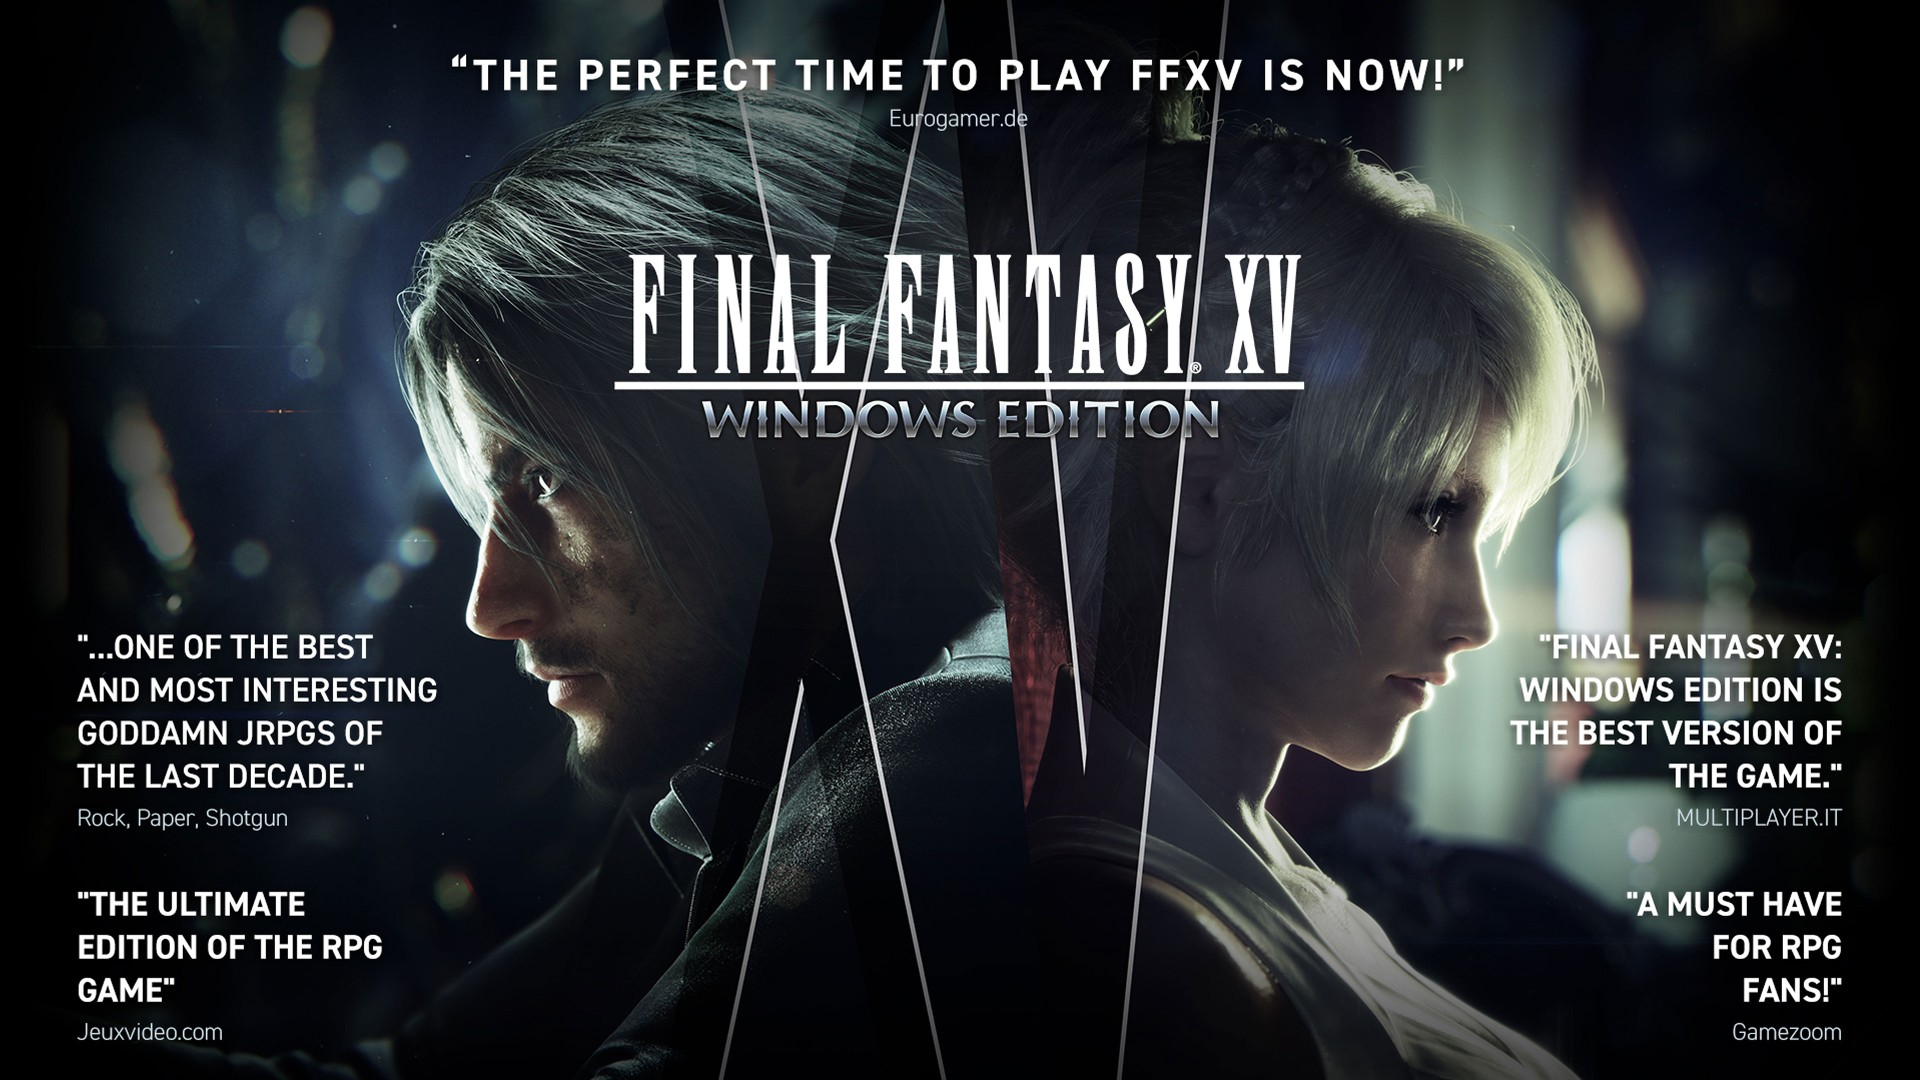 Final Fantasy XV is going to be released in several days. There are a lot of things to do, and it's quite easy to forget which button does what. In this guide, we're going to show you a list of Final Fantasy XV controls on both Playstation 4 and Xbox One.